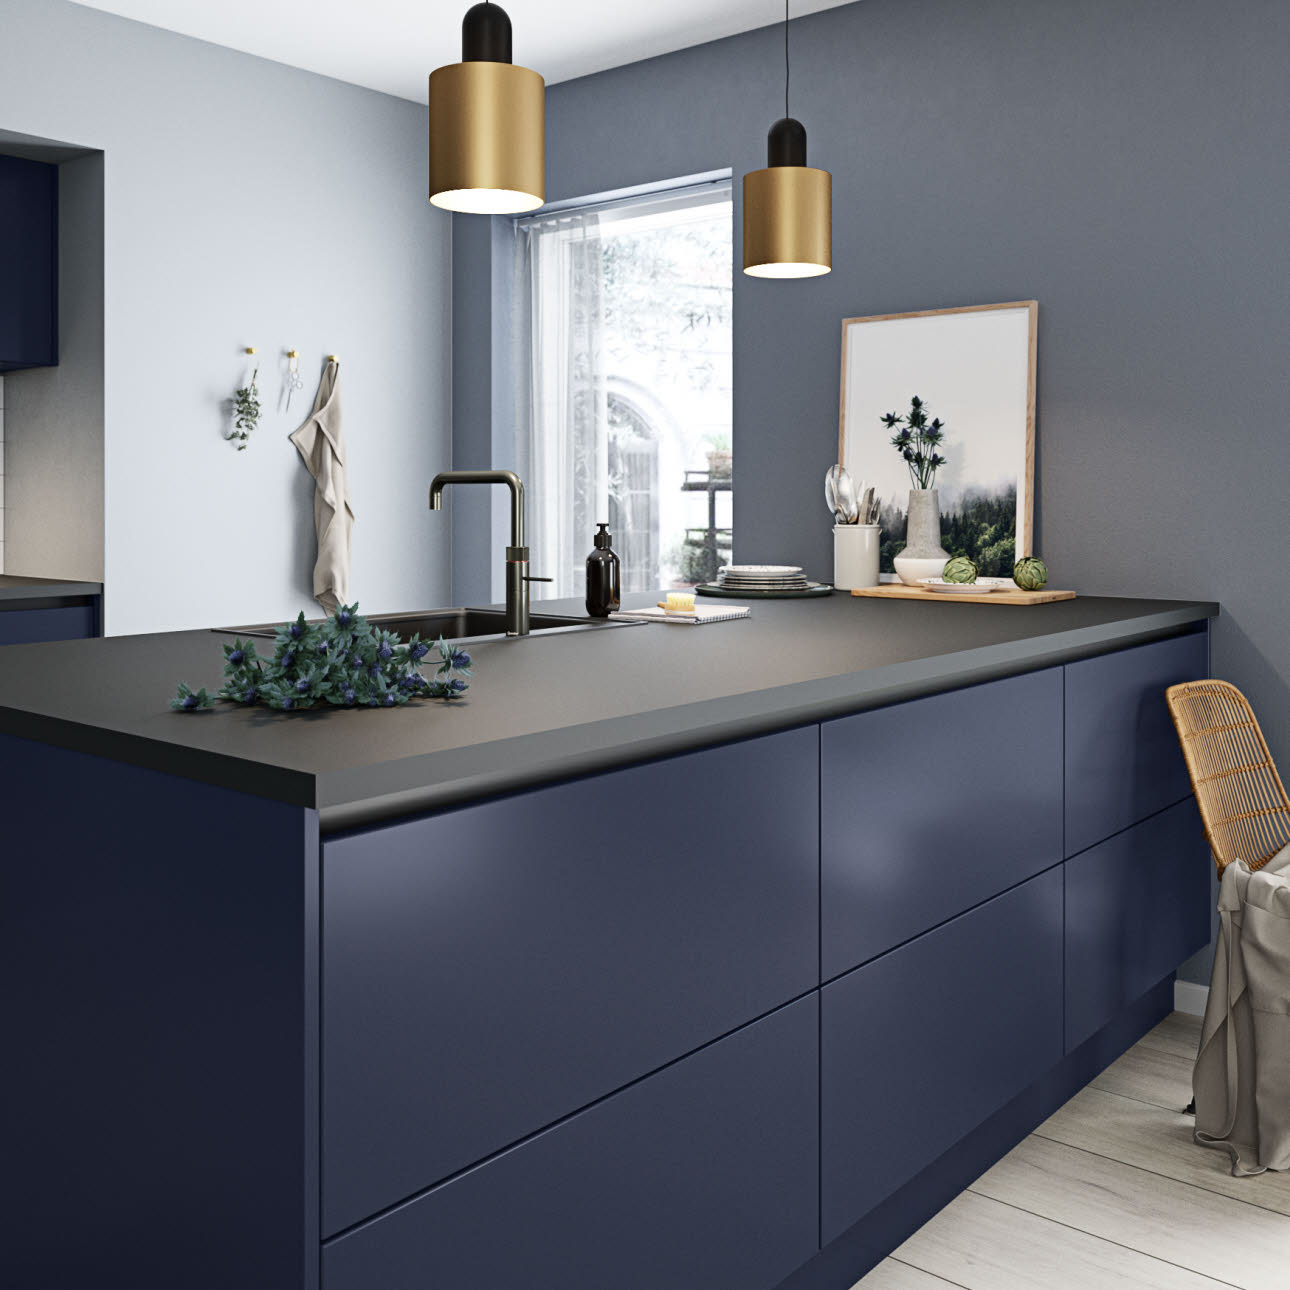 HTH Kitchen: Bathrooms, Wardrobes And Kitchens In